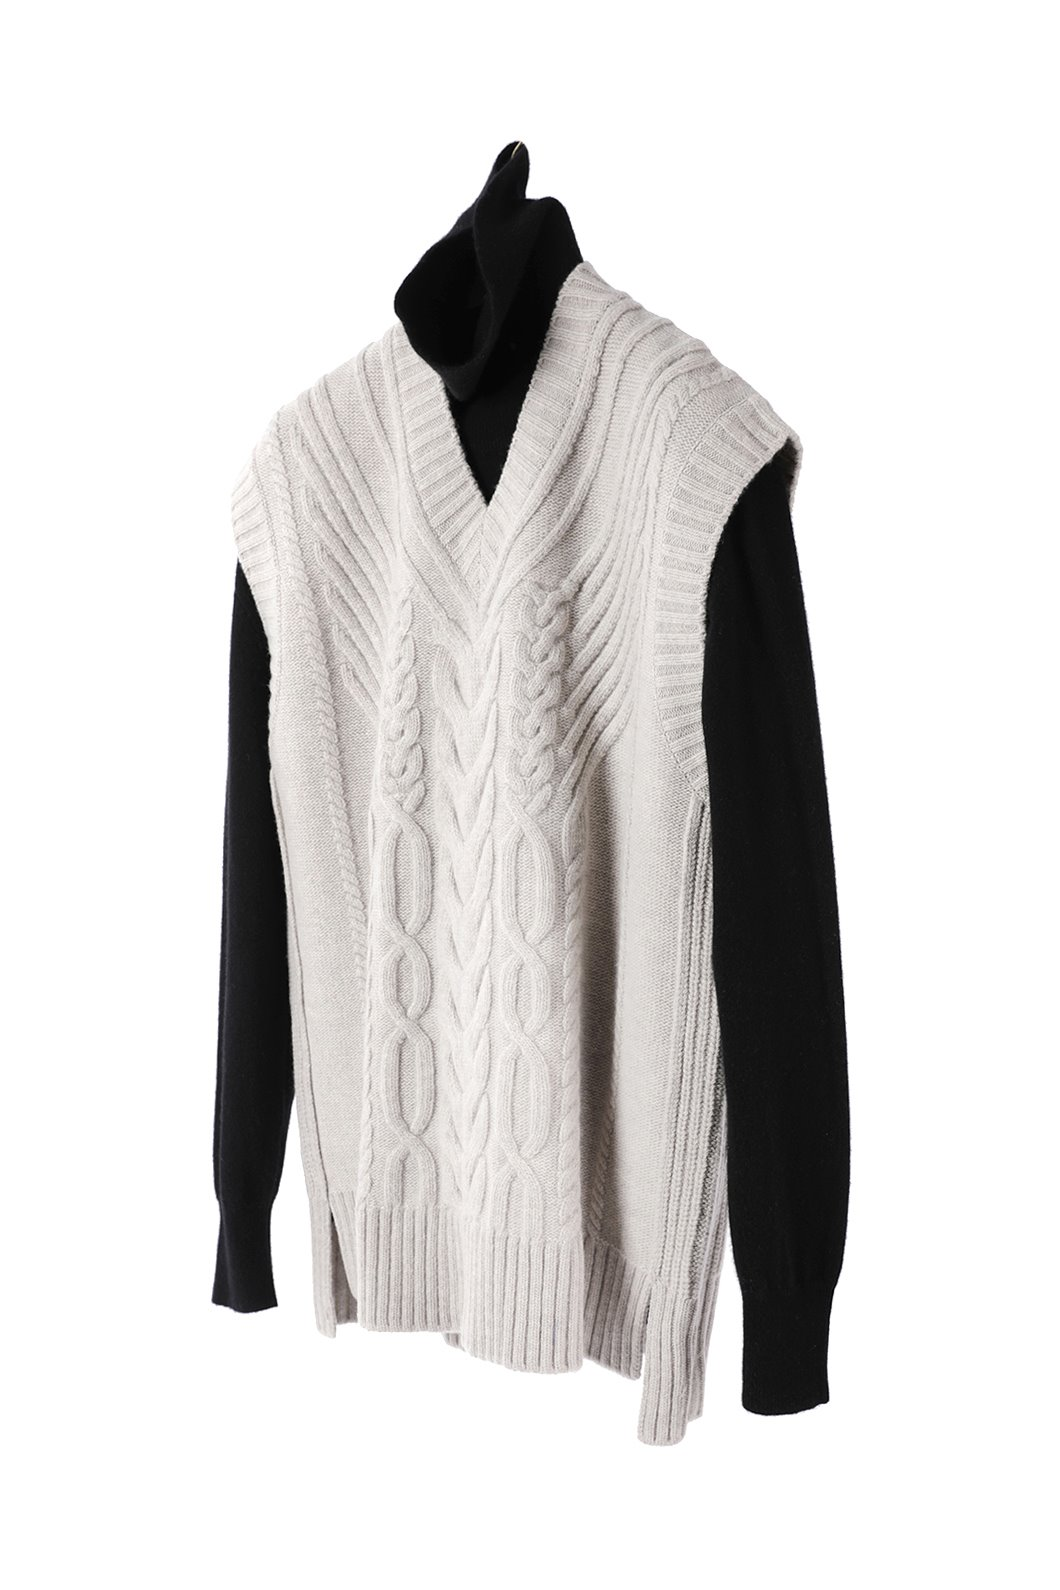 Cashmere Cable Knitting Over Vest-2Color